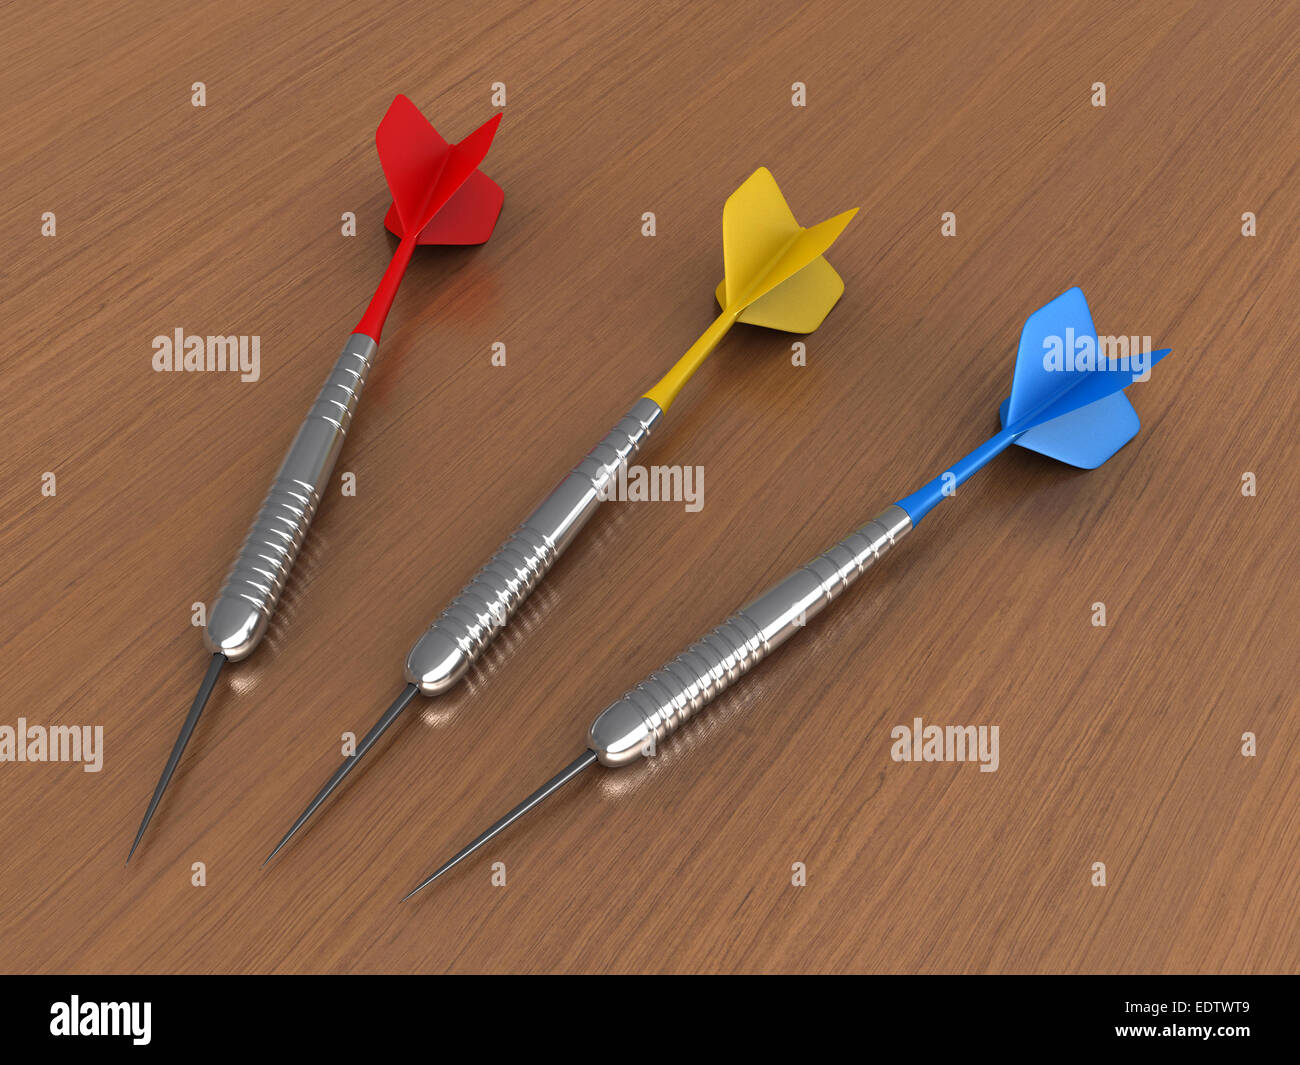 3d render of darts over table background - Stock Image